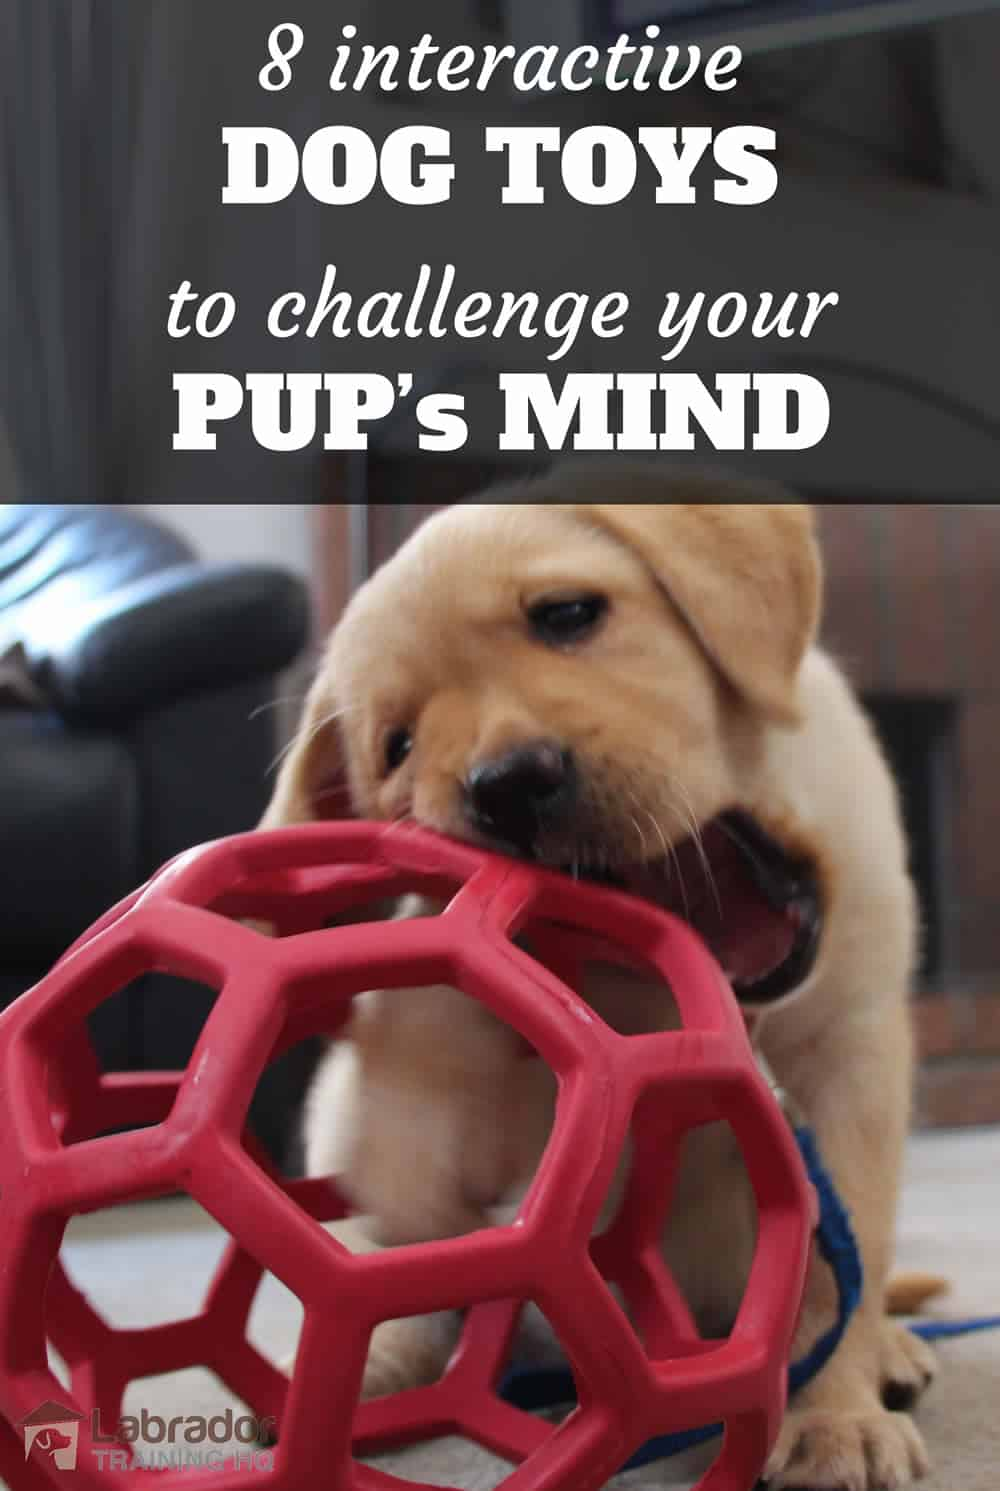 Yellow Lab puppy playing with red honeycomb ball. - 8 best interactive dog toys to challenge your pup's mind.